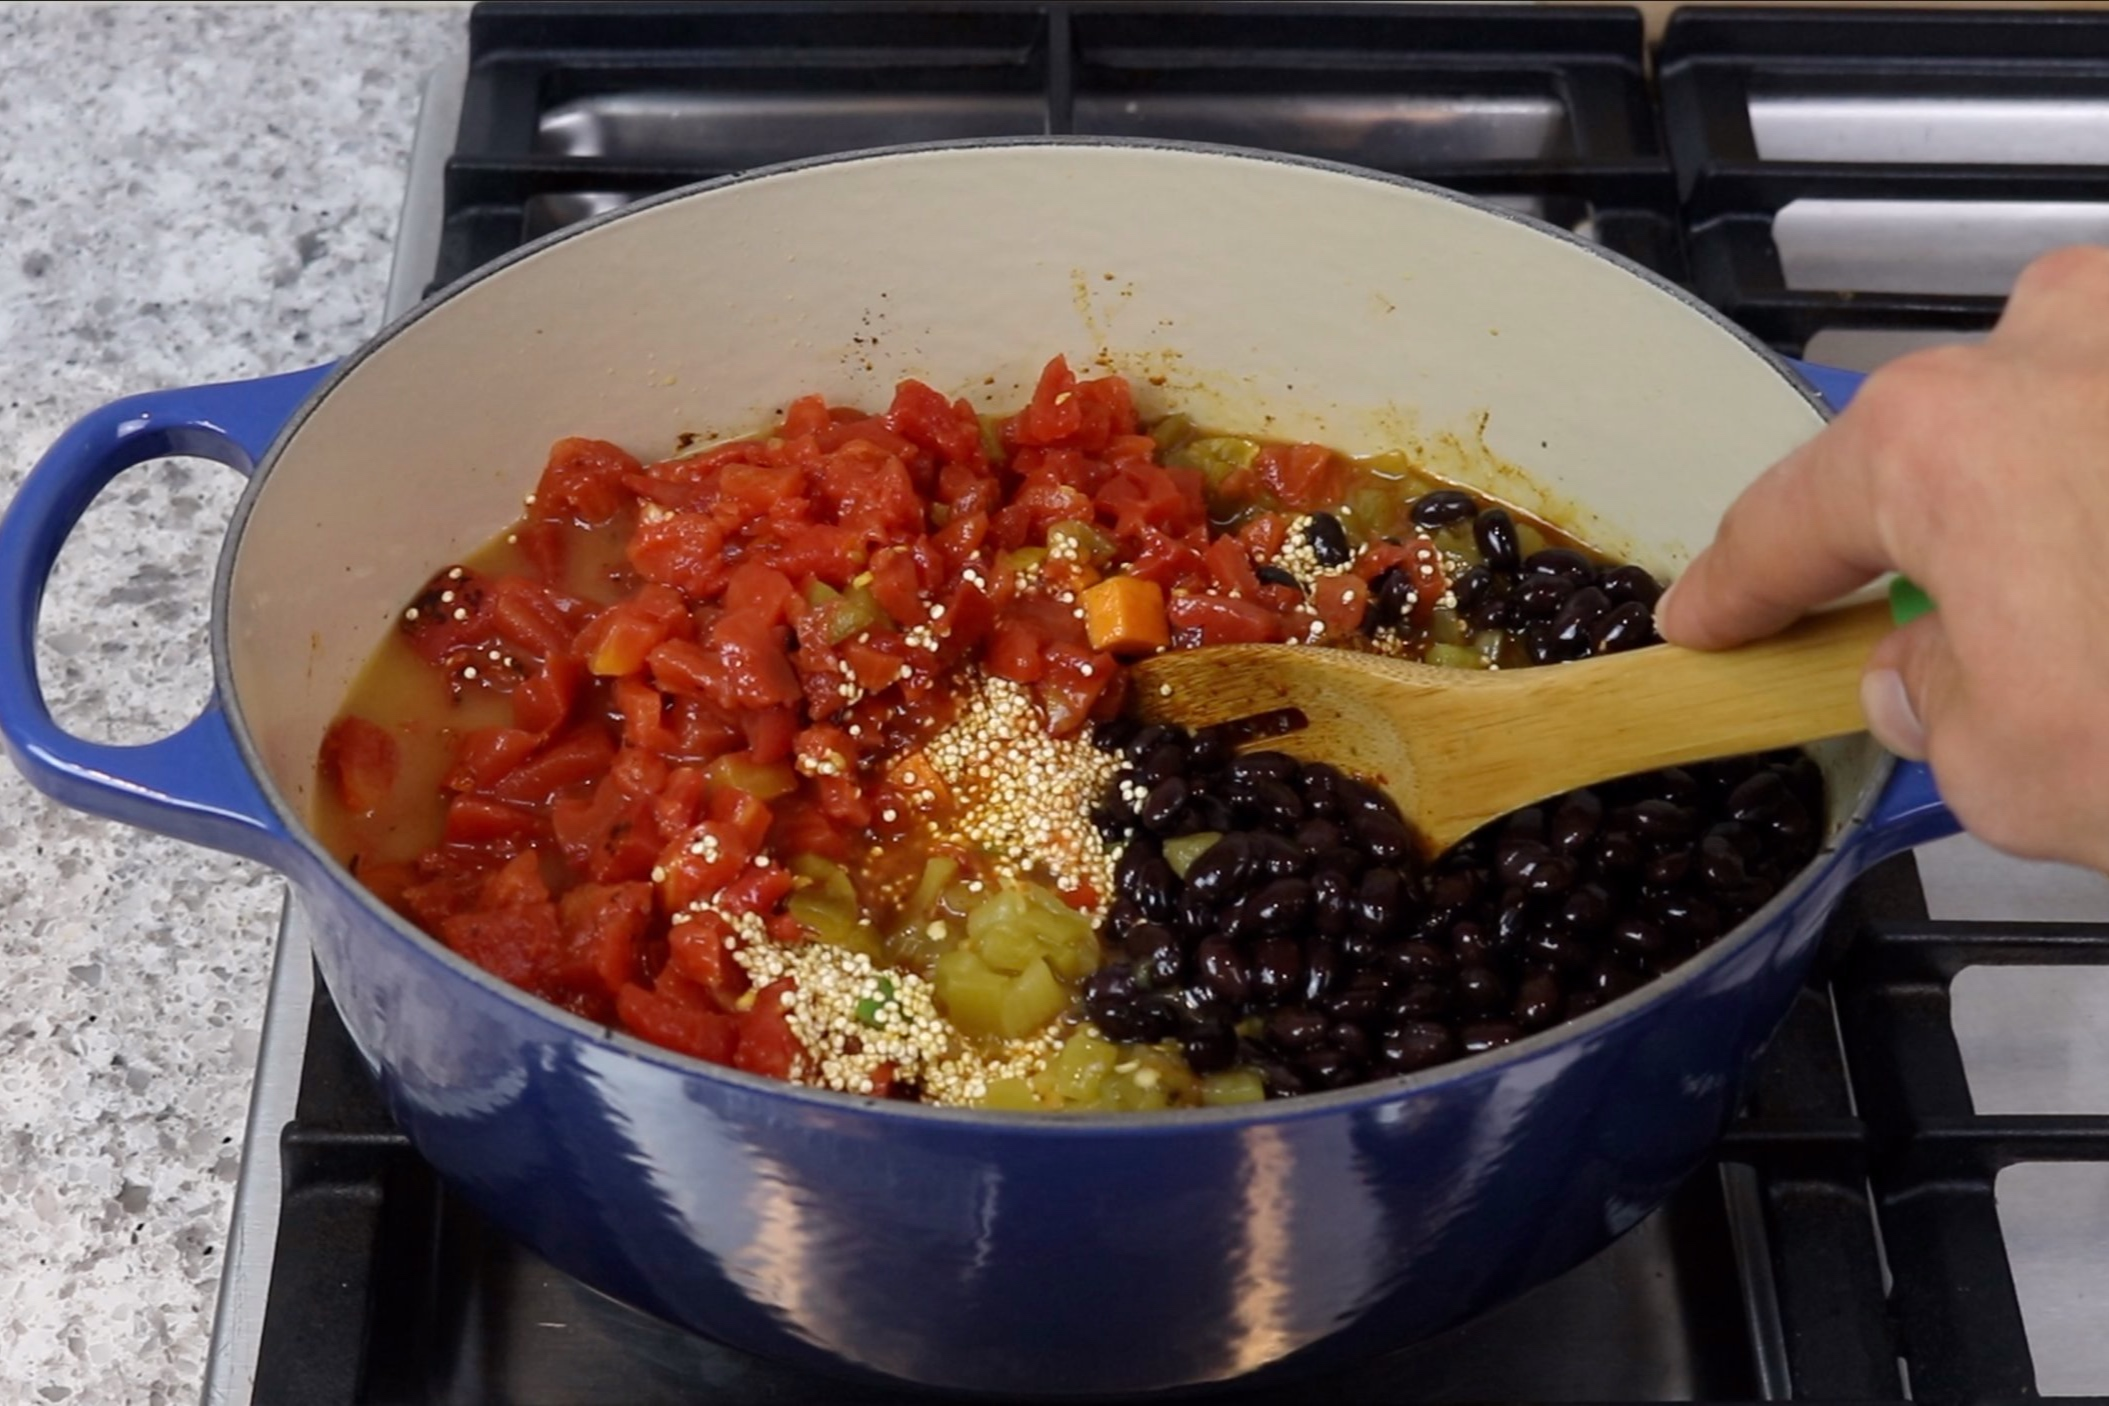 4. Add the quinoa, diced tomatoes, Rotel, black beans, green chilies and chicken broth. Stir to combine. -